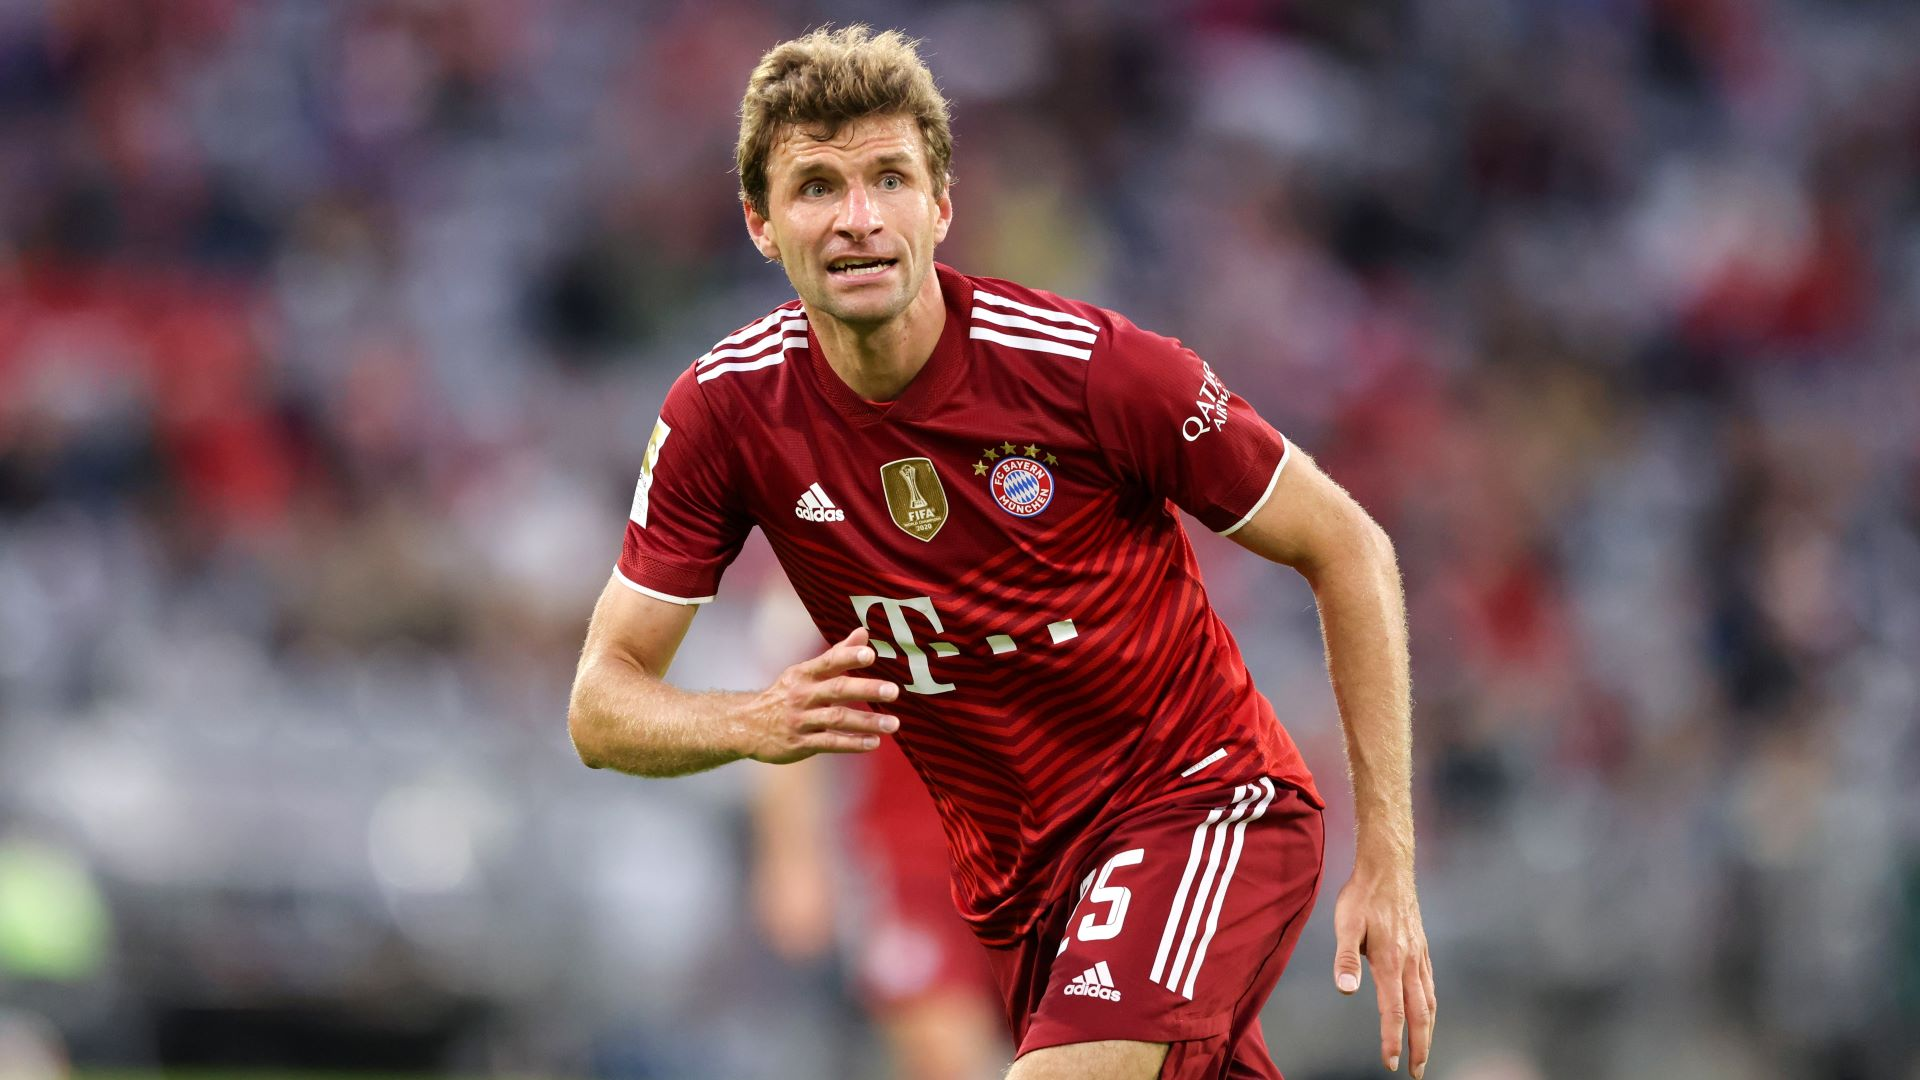 Greuther Furth vs Bayern Munich: Kick-Off, Prediction And Match Preview